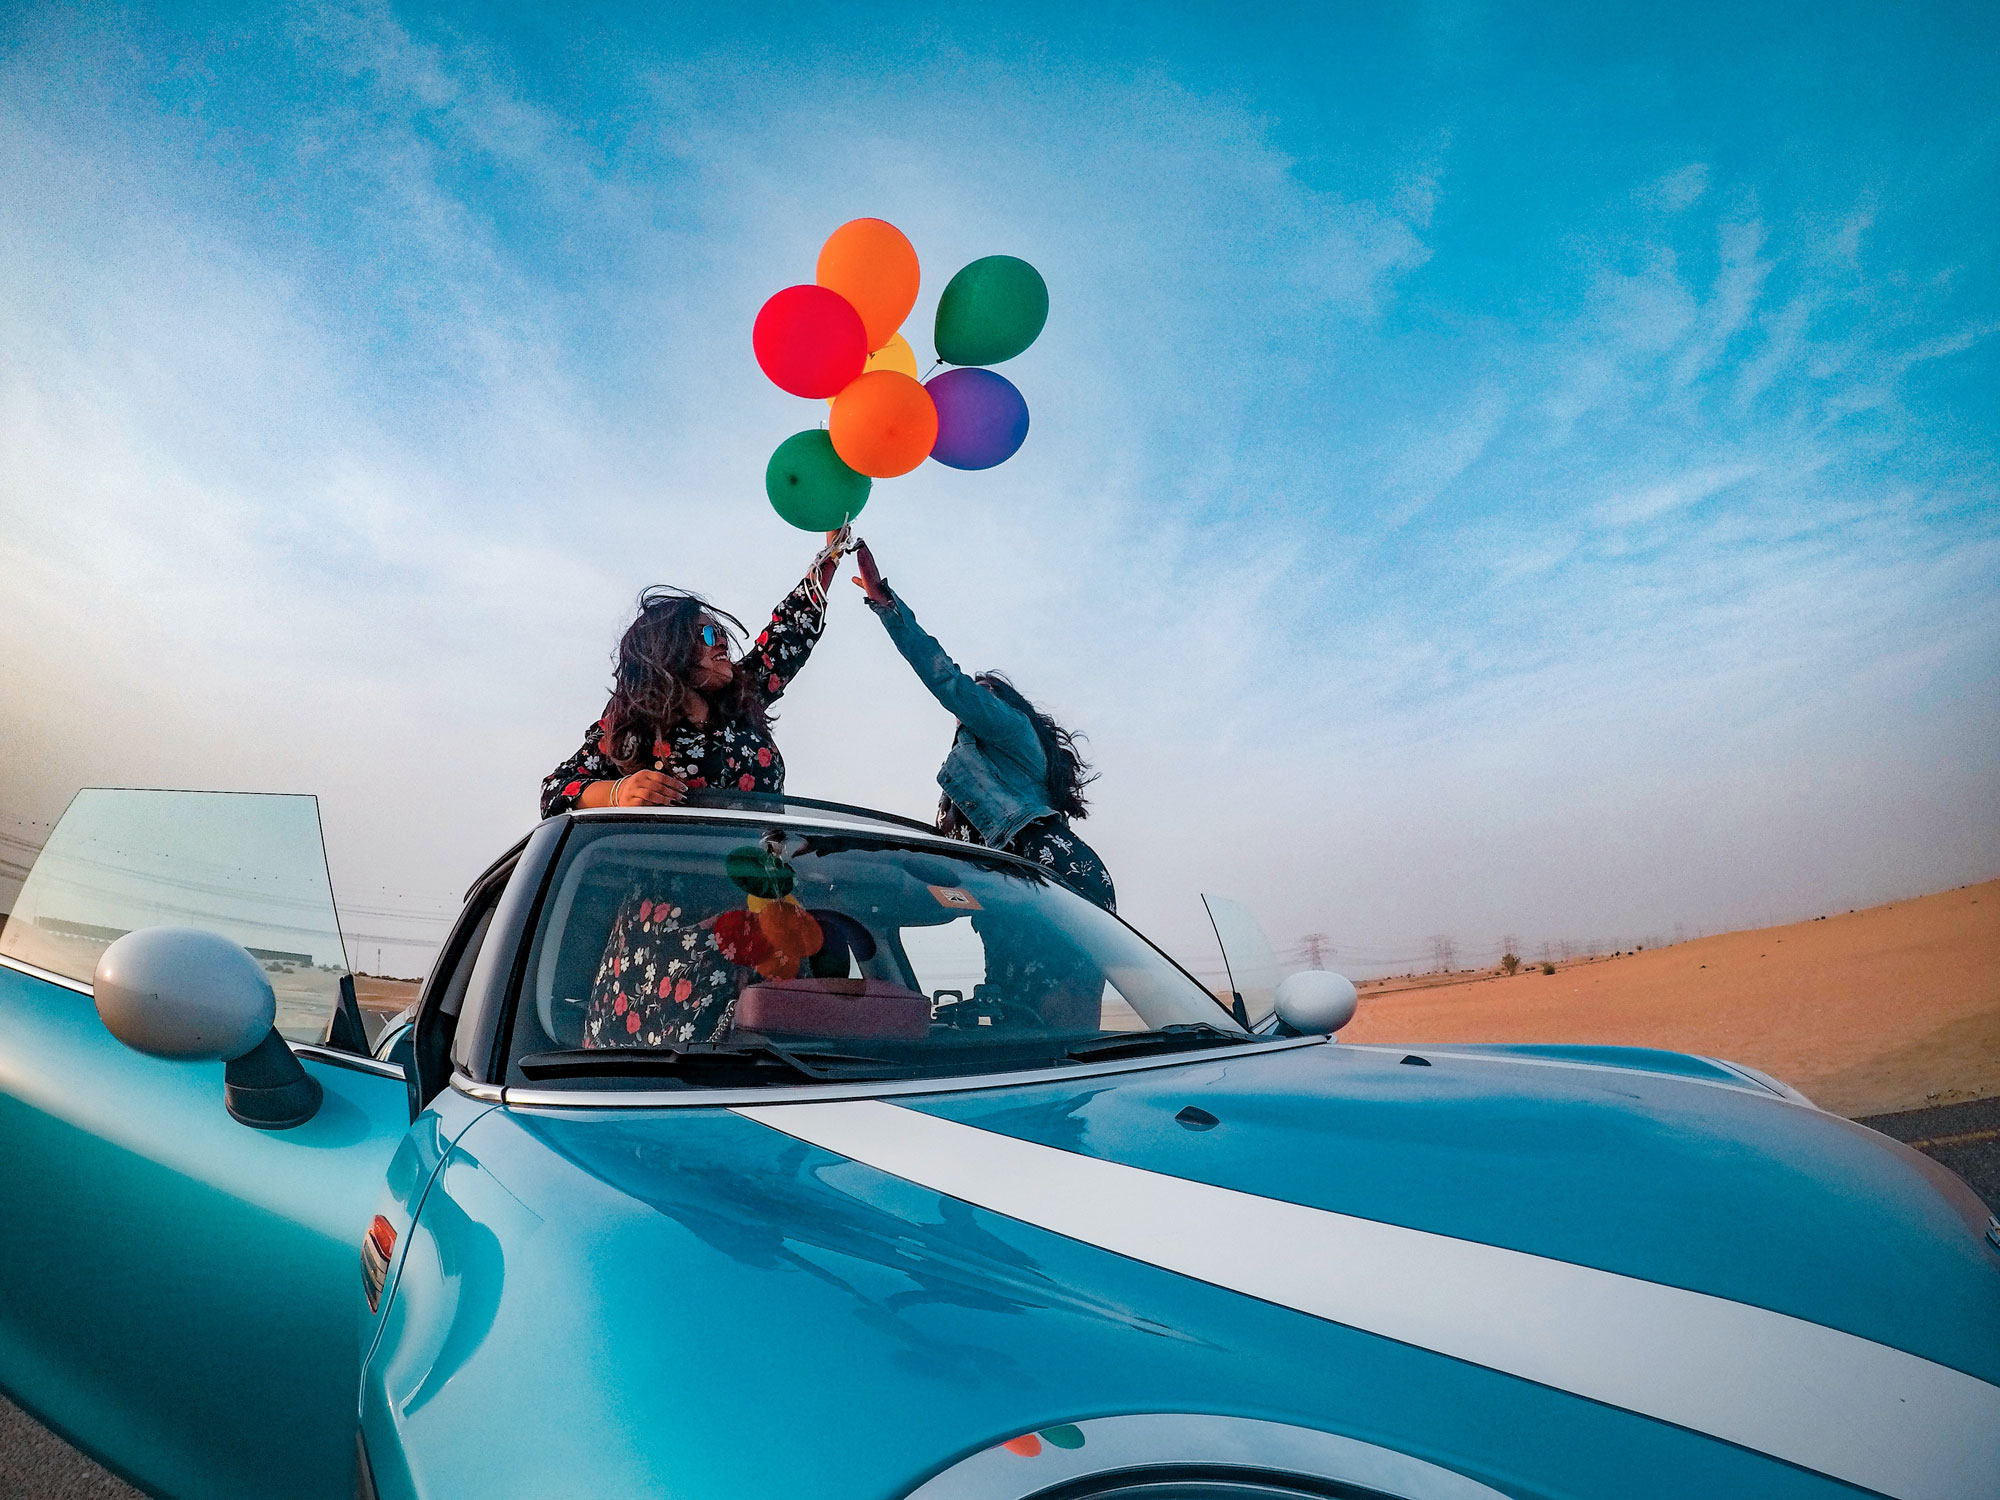 two women with balloons in a sports car